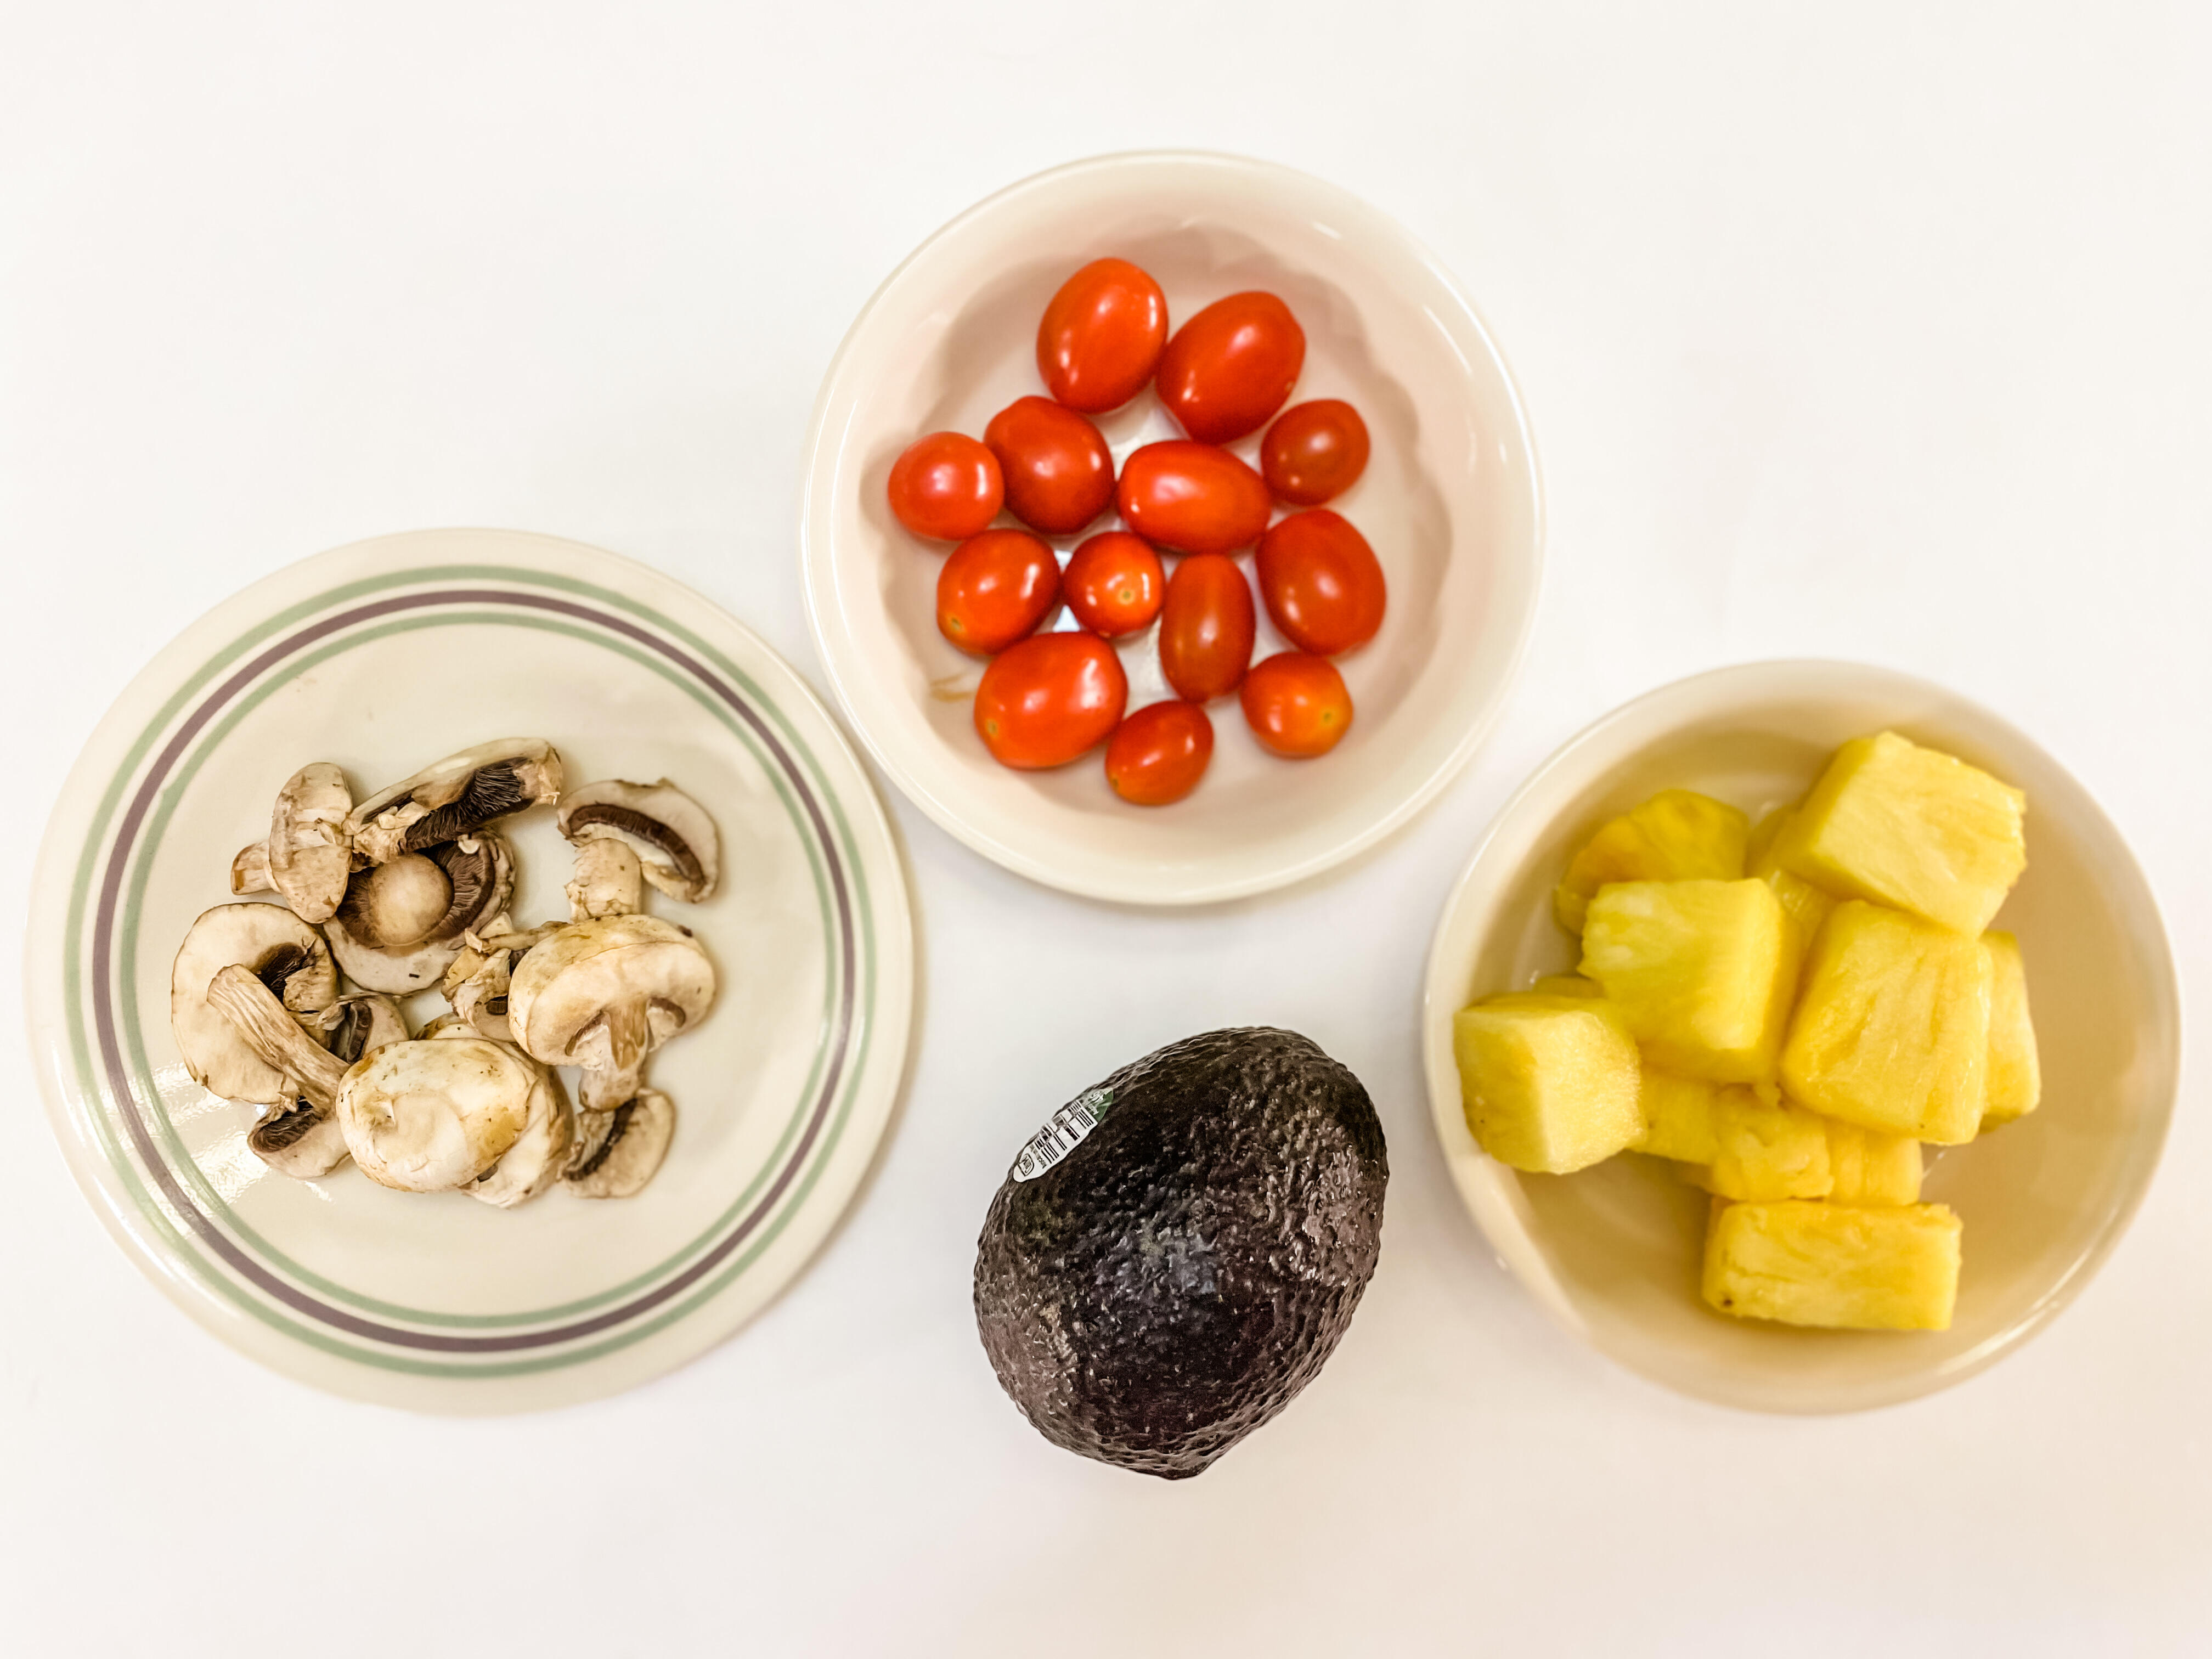 5 servings of produce: half cup mushrooms, half cup cherry tomatoes, one cup pineapple, one avocado